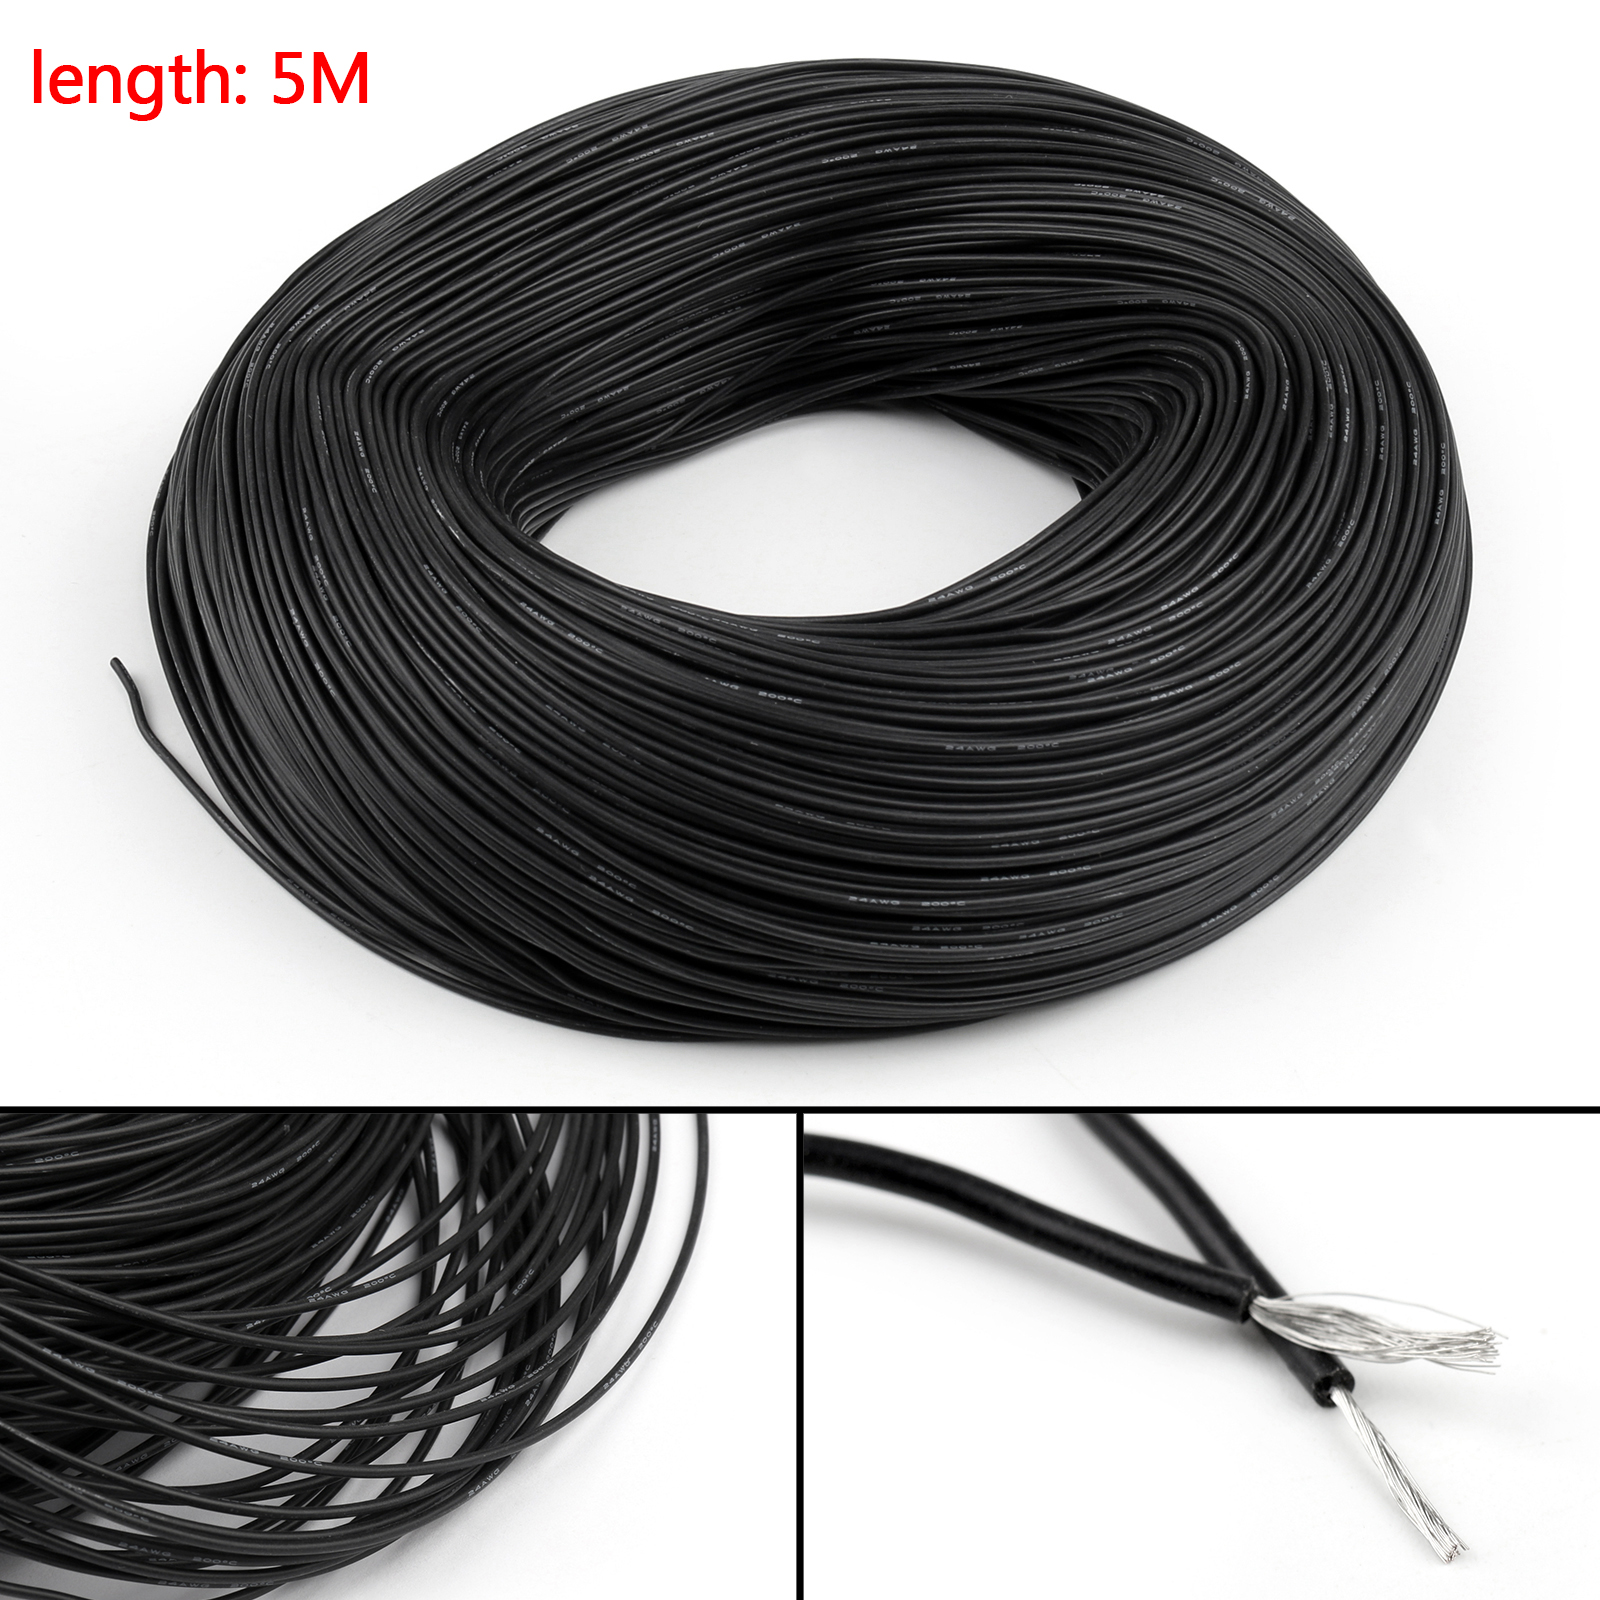 5m flexible stranded silicone rubber wire cable 24awg gauge od 15 type flexible silicone cable 2 conductor strand stranded 3 wire gauge 24awg 4 conductor nomm 4008ts 5 outer dia od 15mm greentooth Image collections